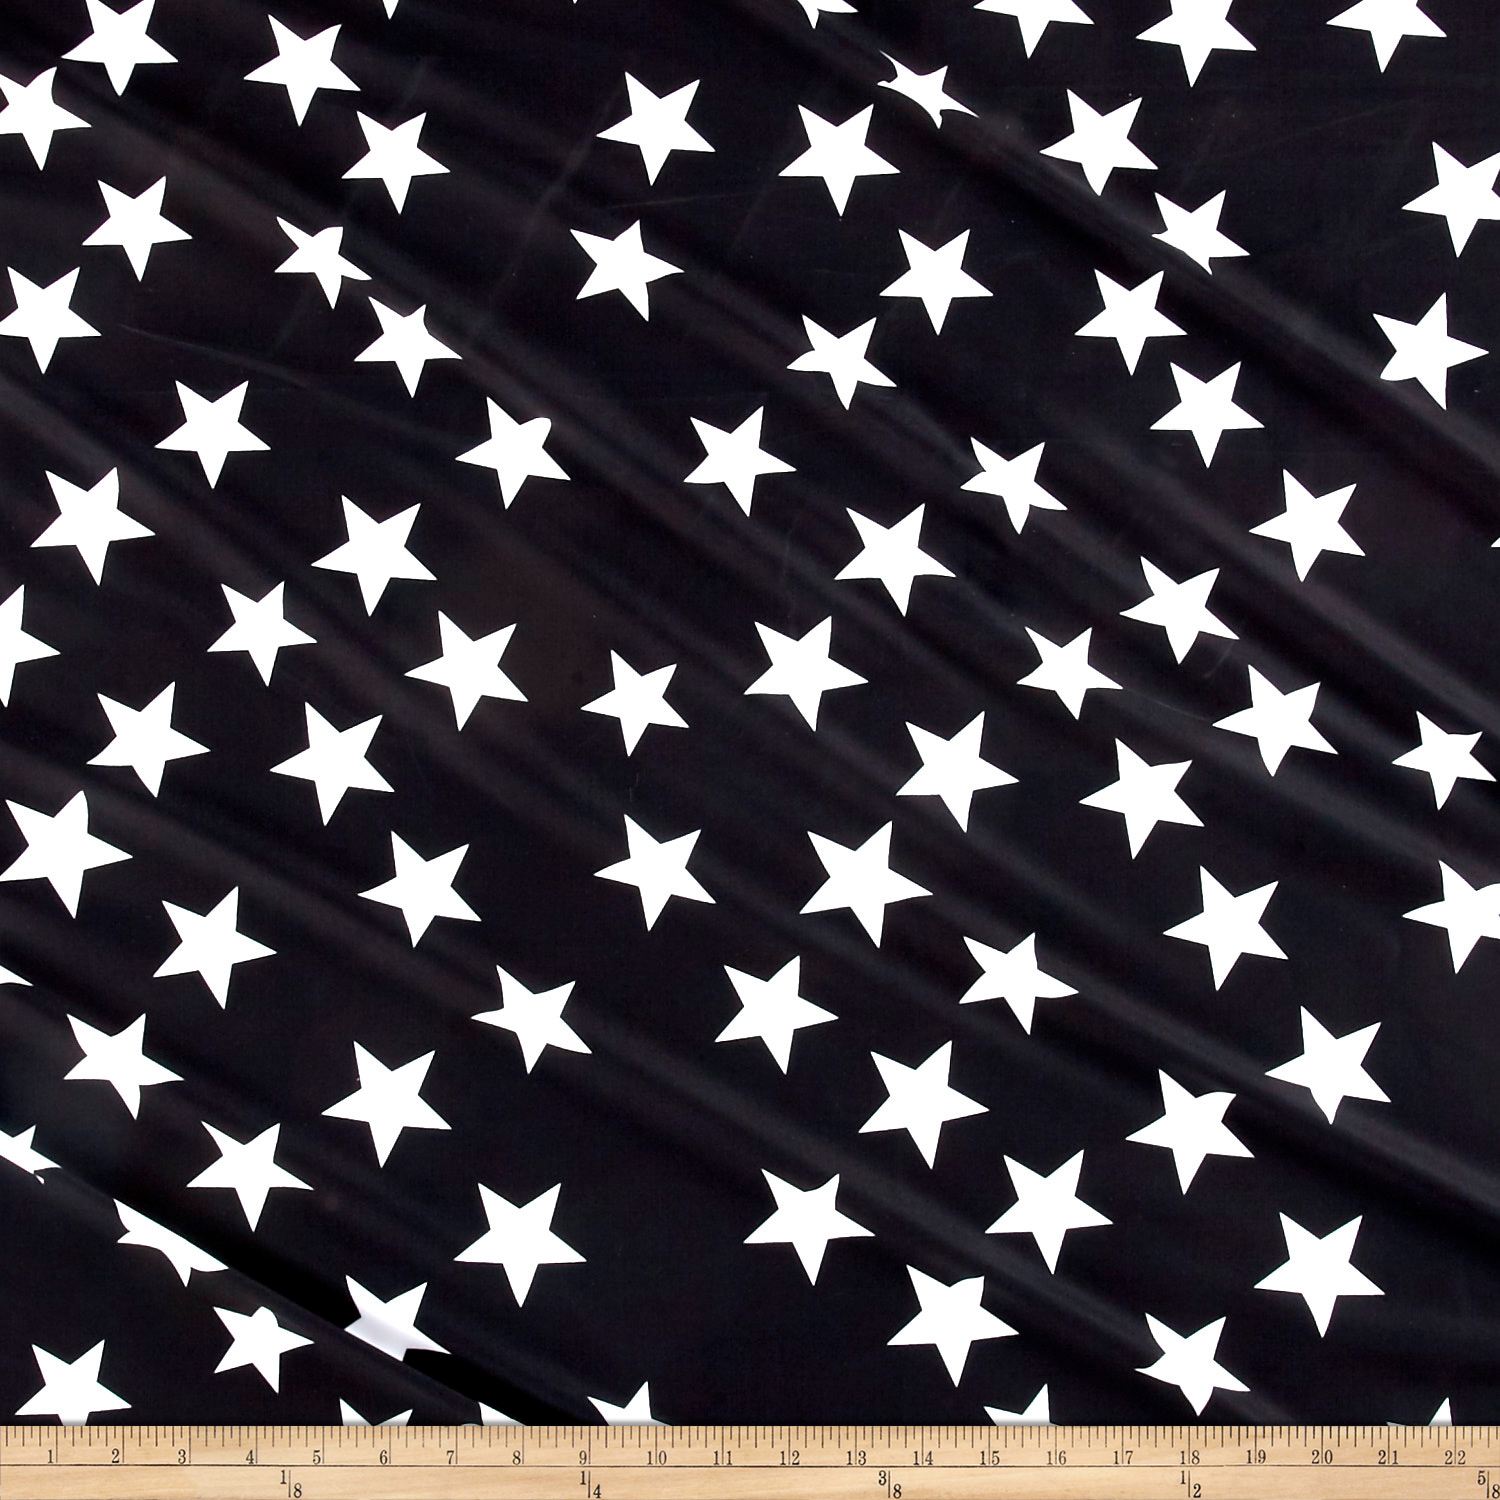 Pine Crest Fabrics You're a Star on Olympus Athletic Double Knit White/Black 0540393